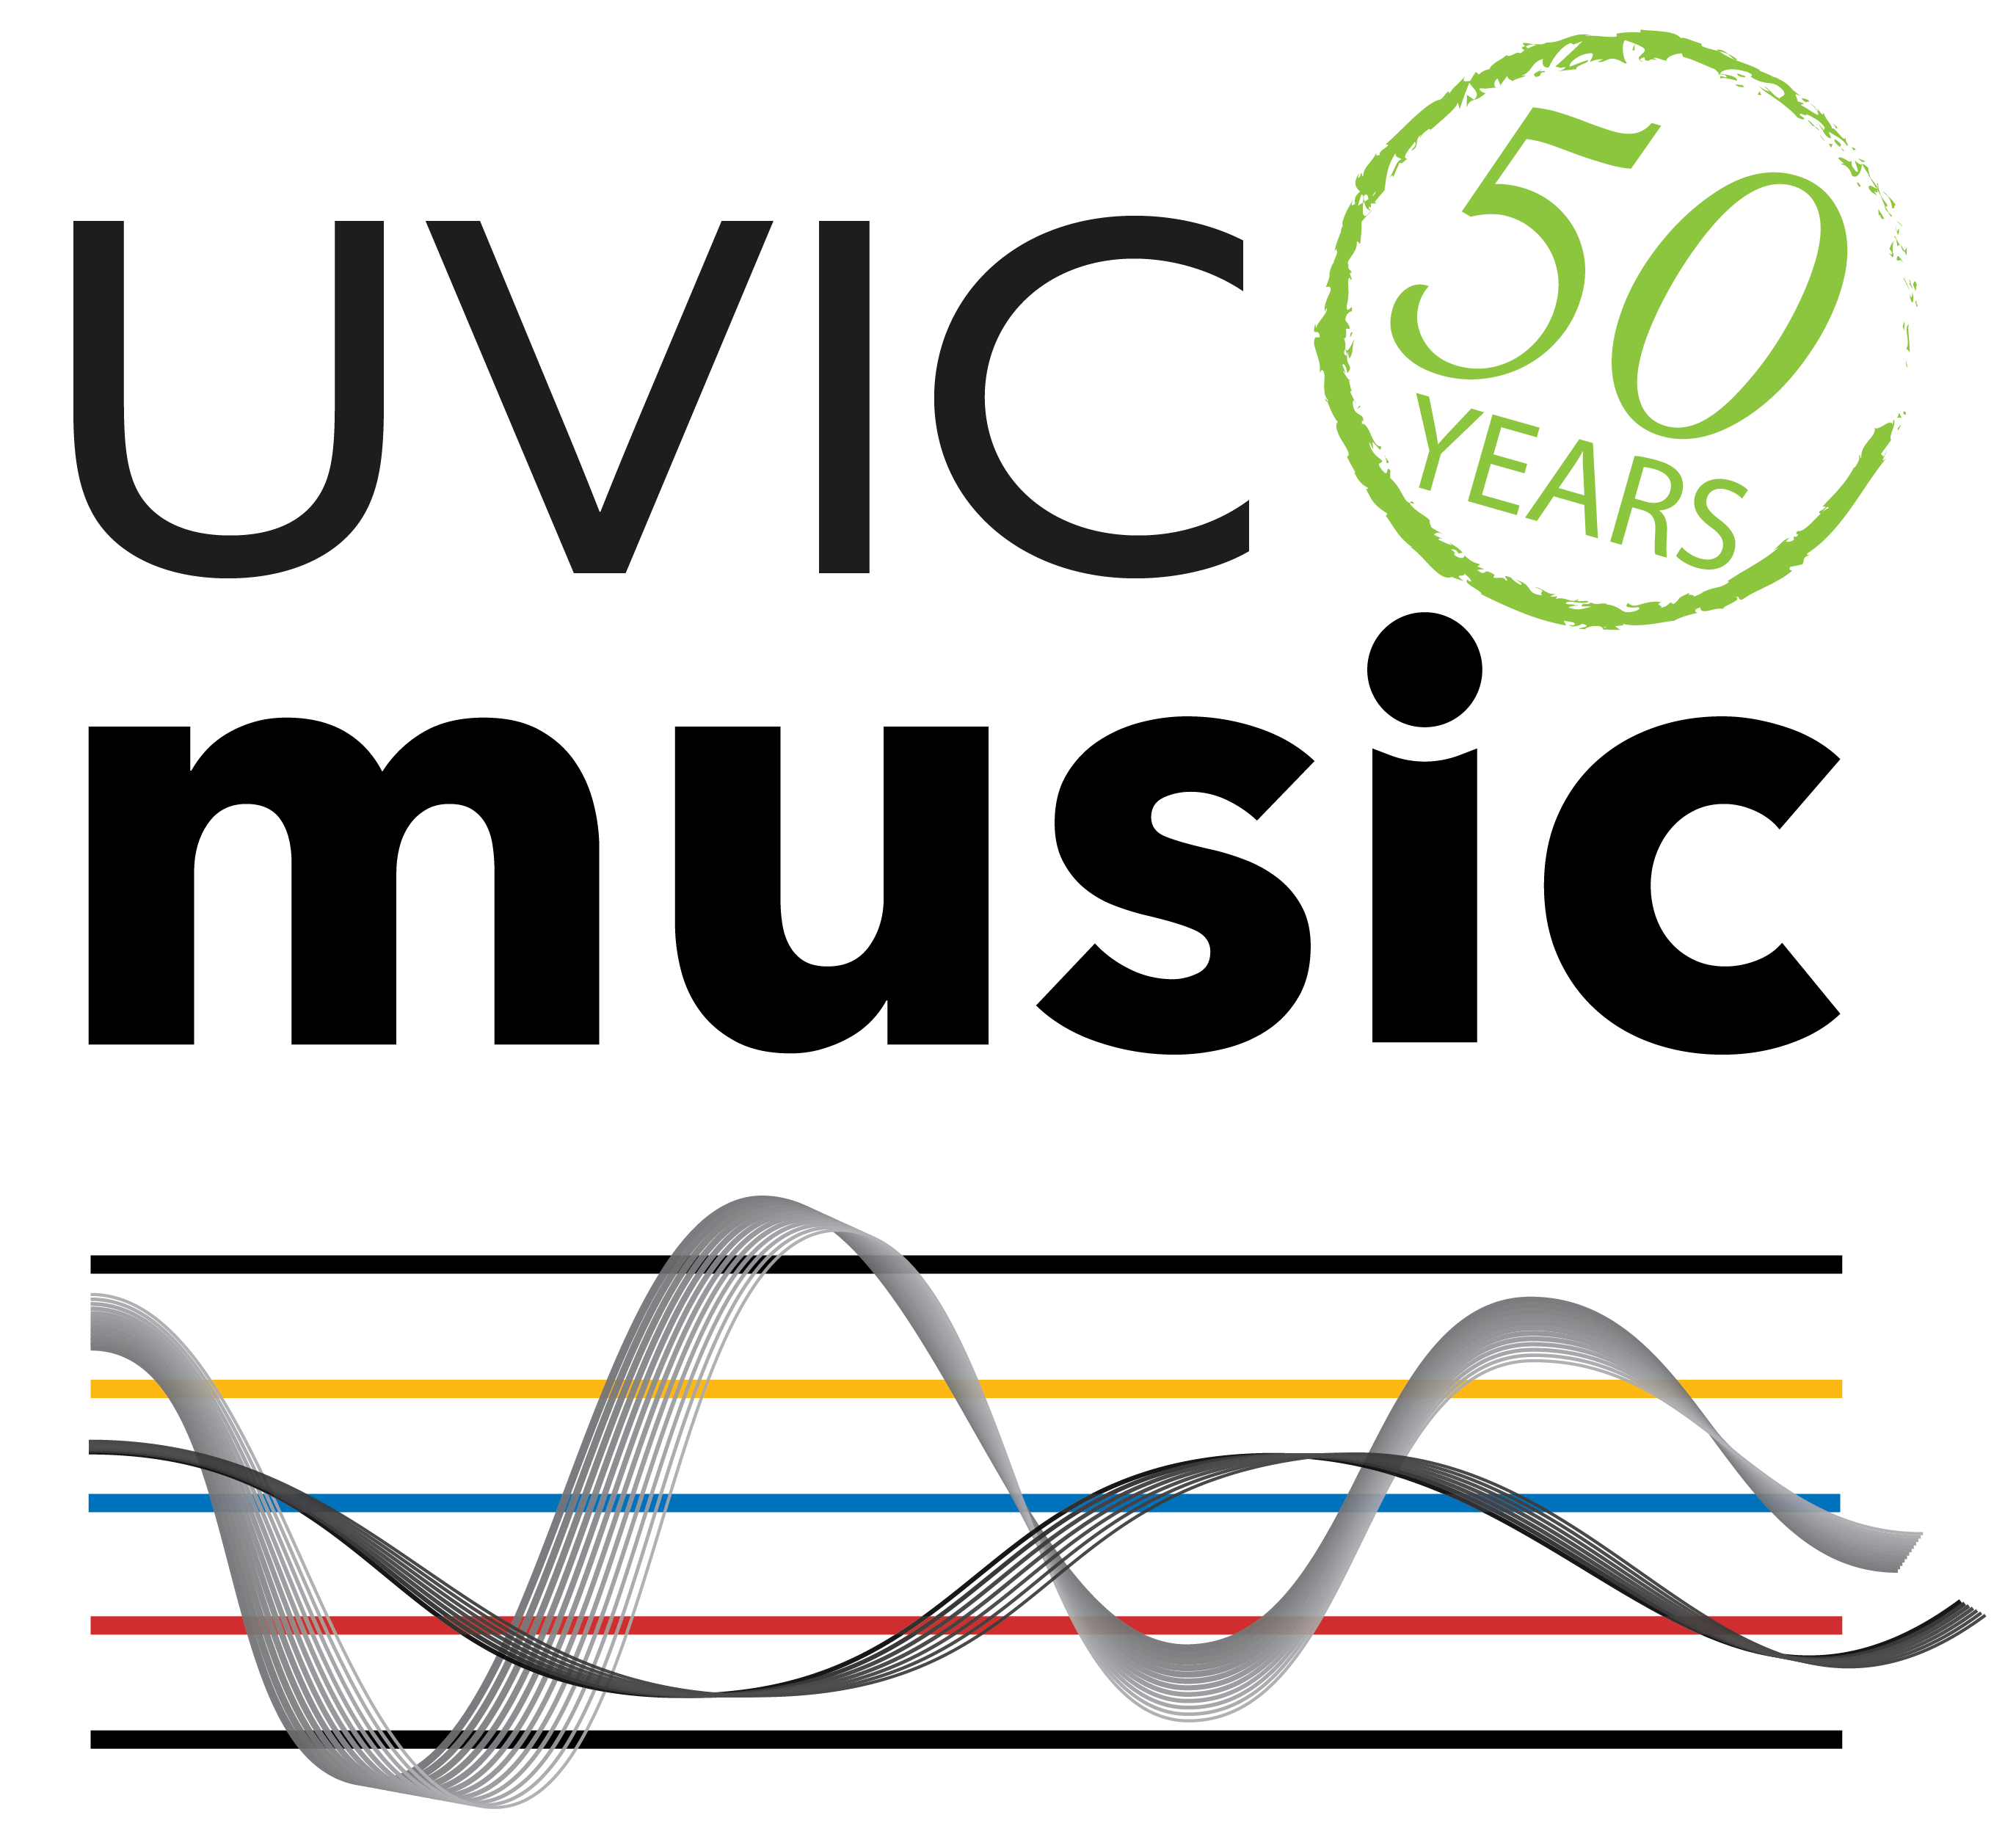 Timeline uvic school of. Orchestra clipart music nashville